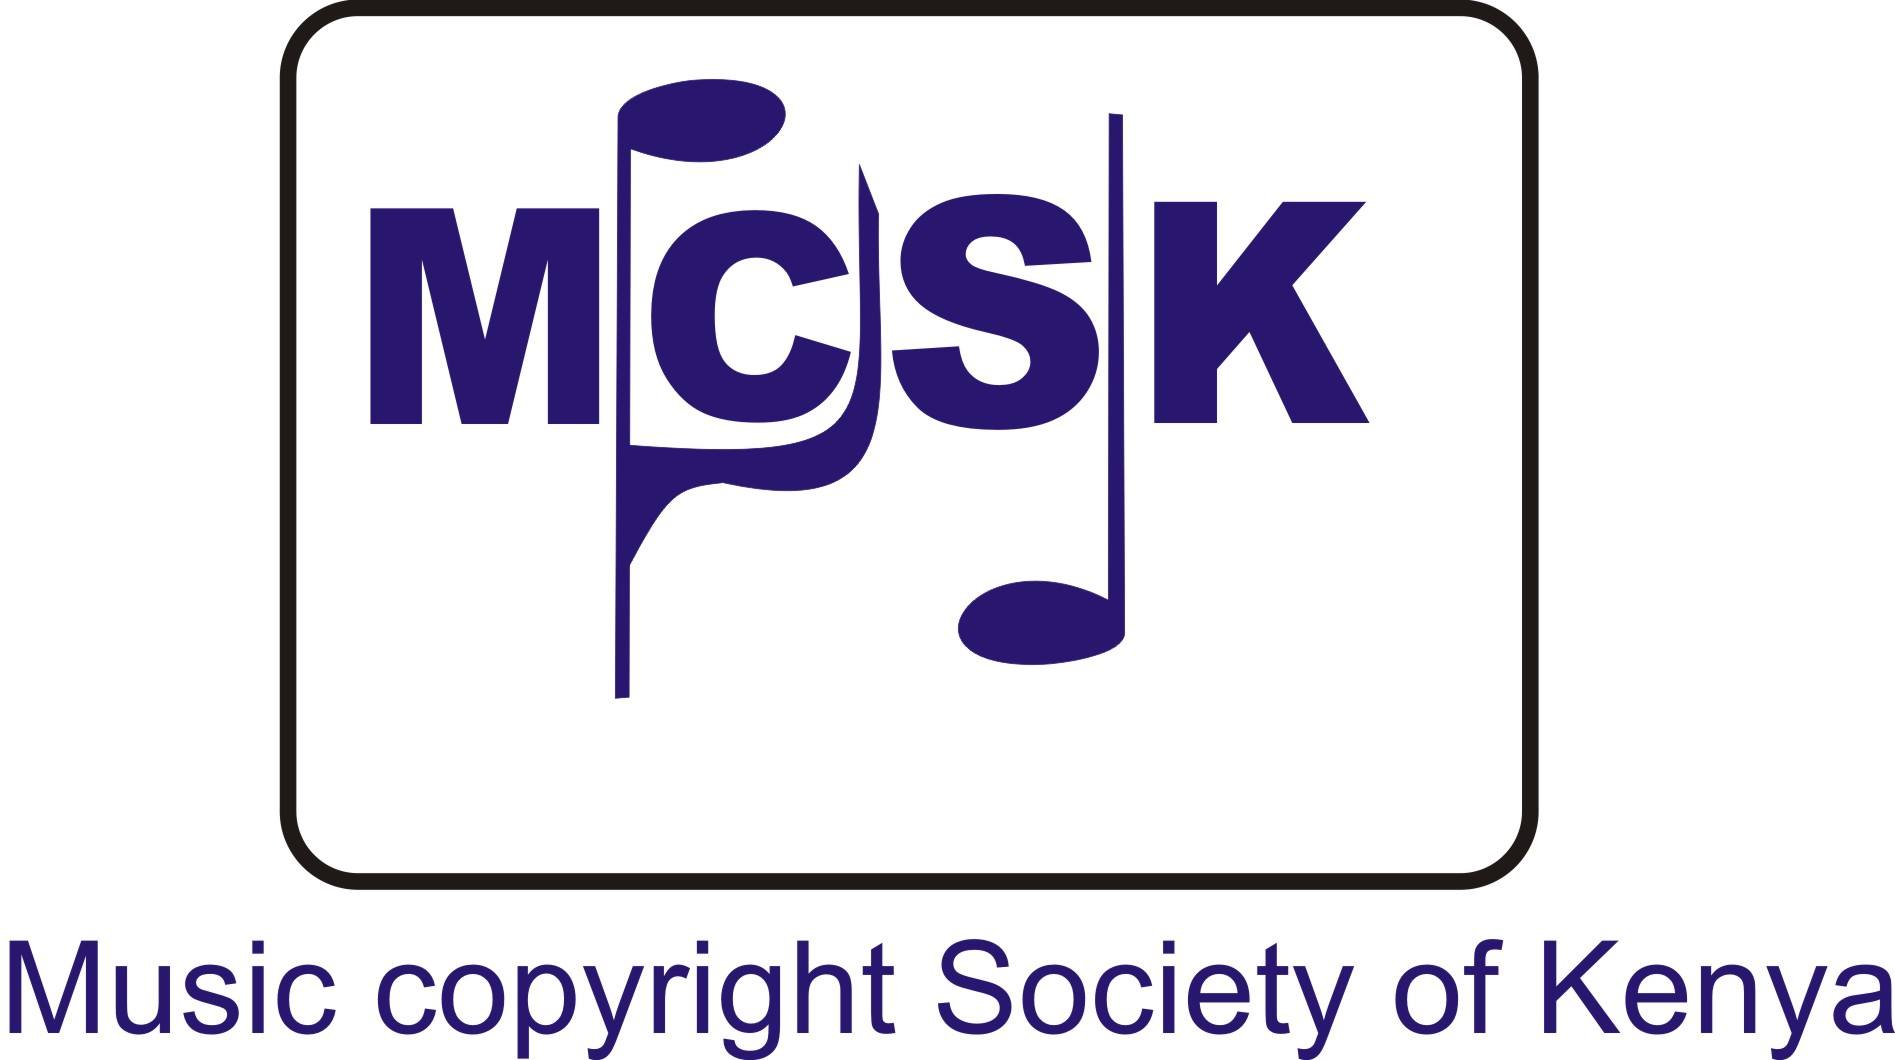 Exclusive: Kenya Music Copyright Society (MCSK) NO MORE! This is how they dug their own grave